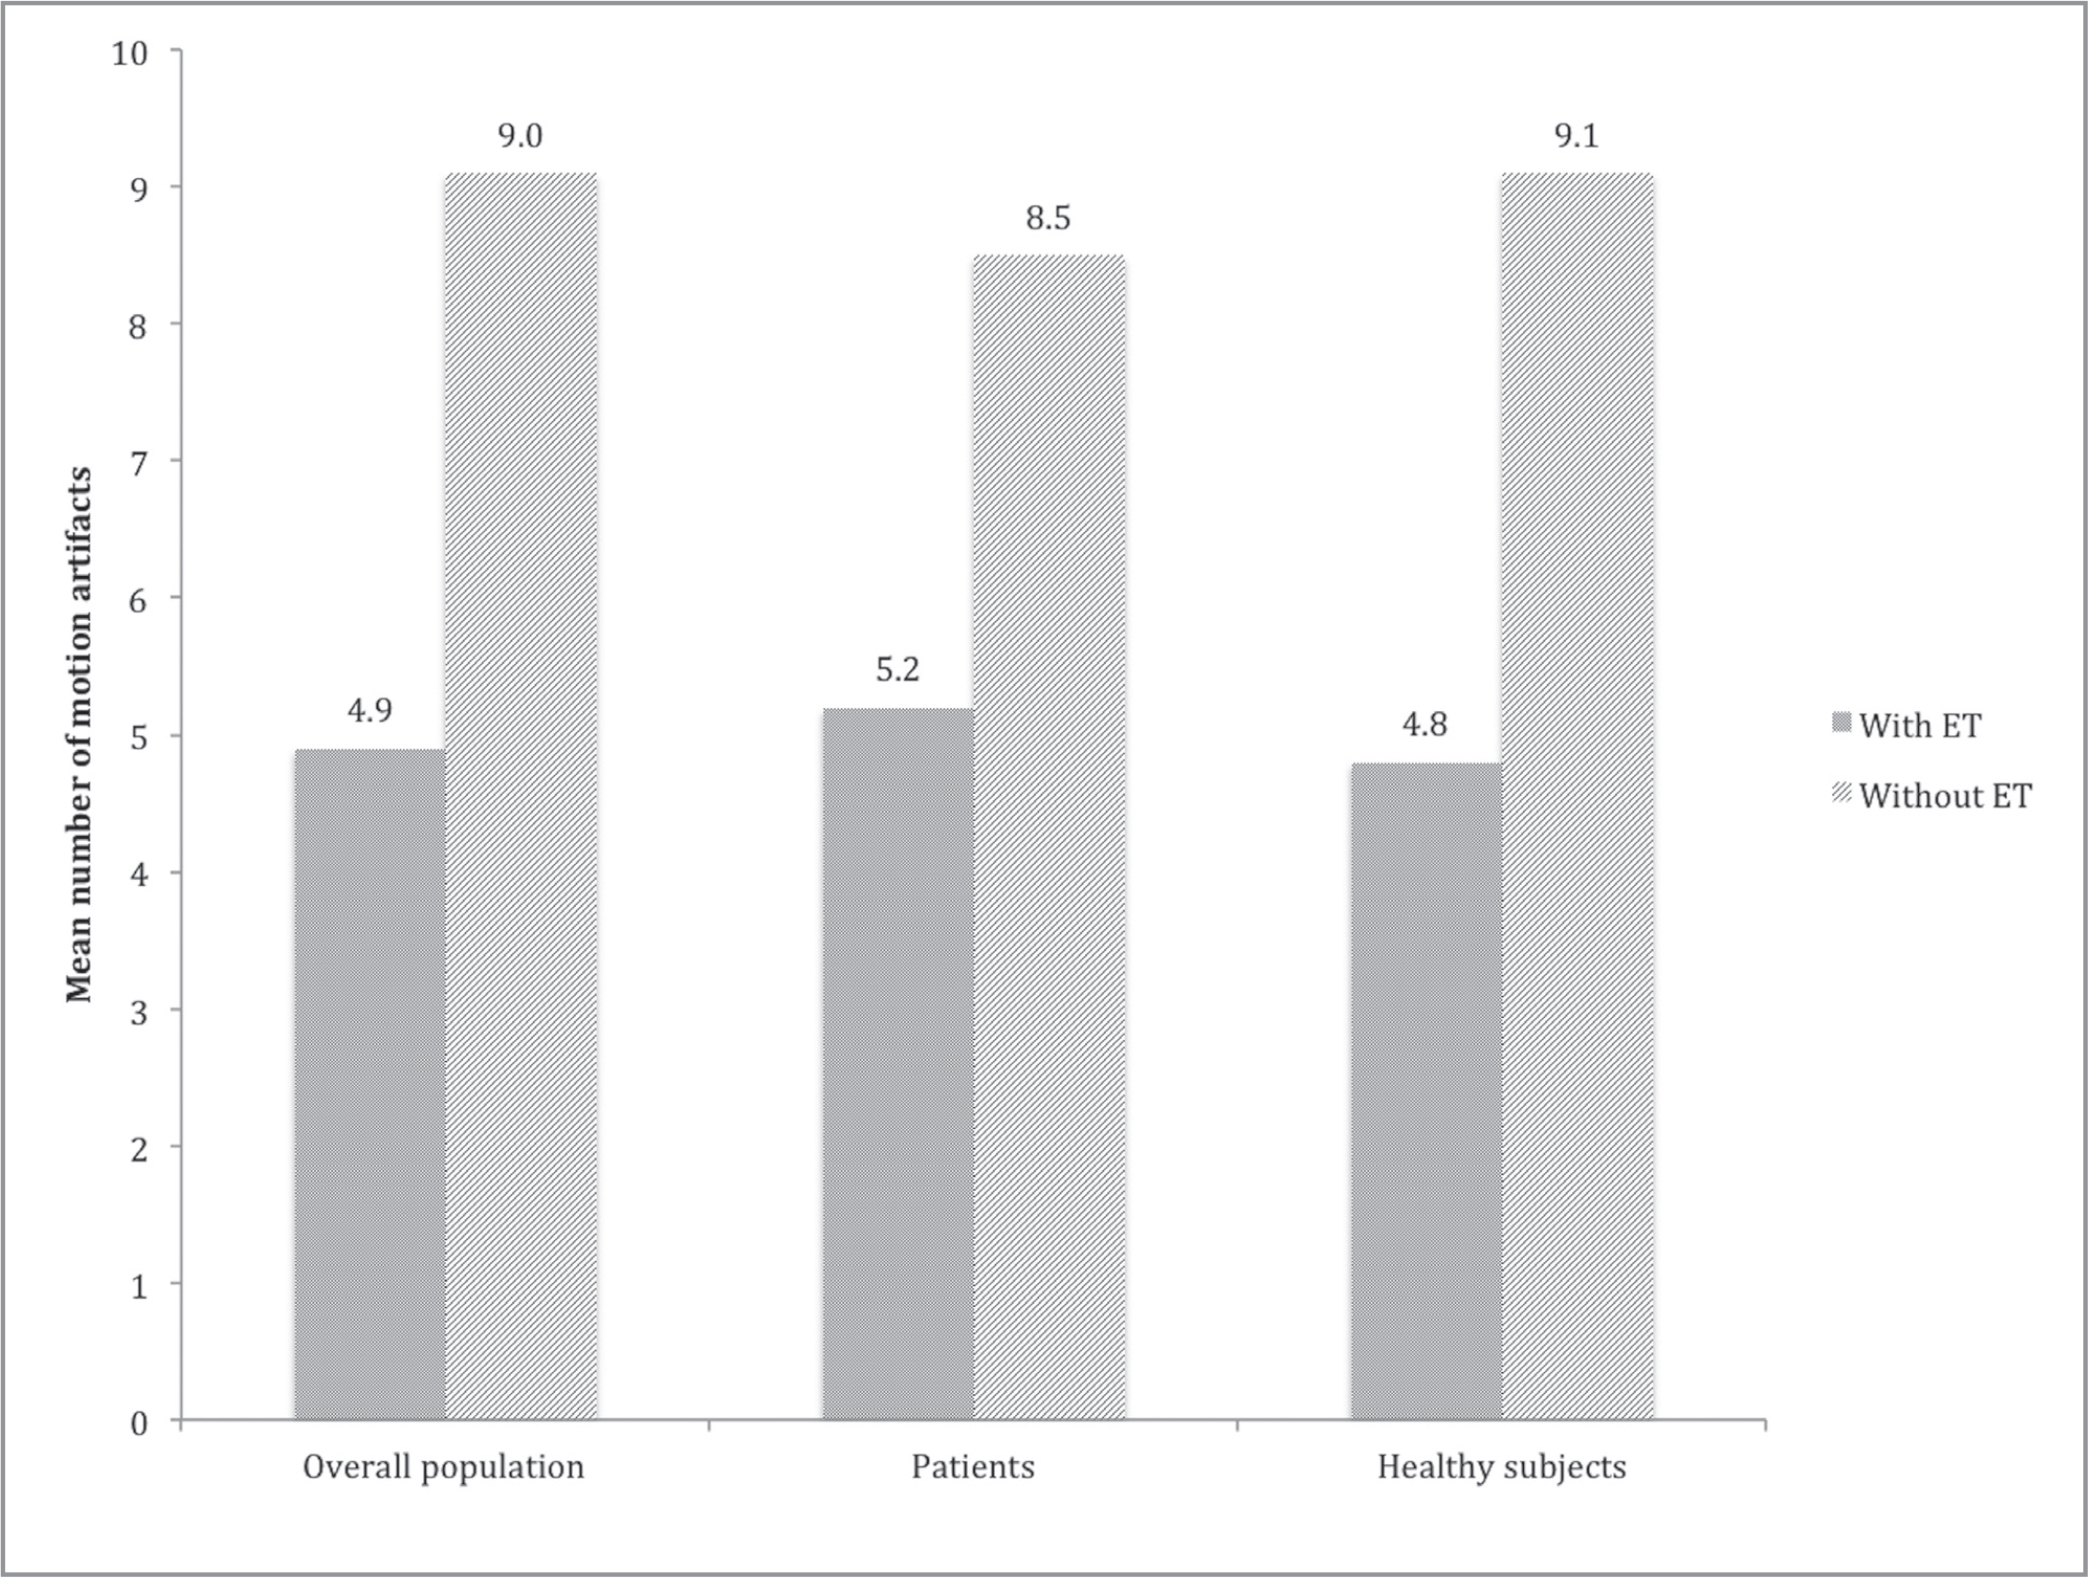 Number of motion artifacts per image. AngioVue with eye-tracking (ET) versus AngioVue without ET in the overall population and in the two groups separately (patients and healthy subjects).